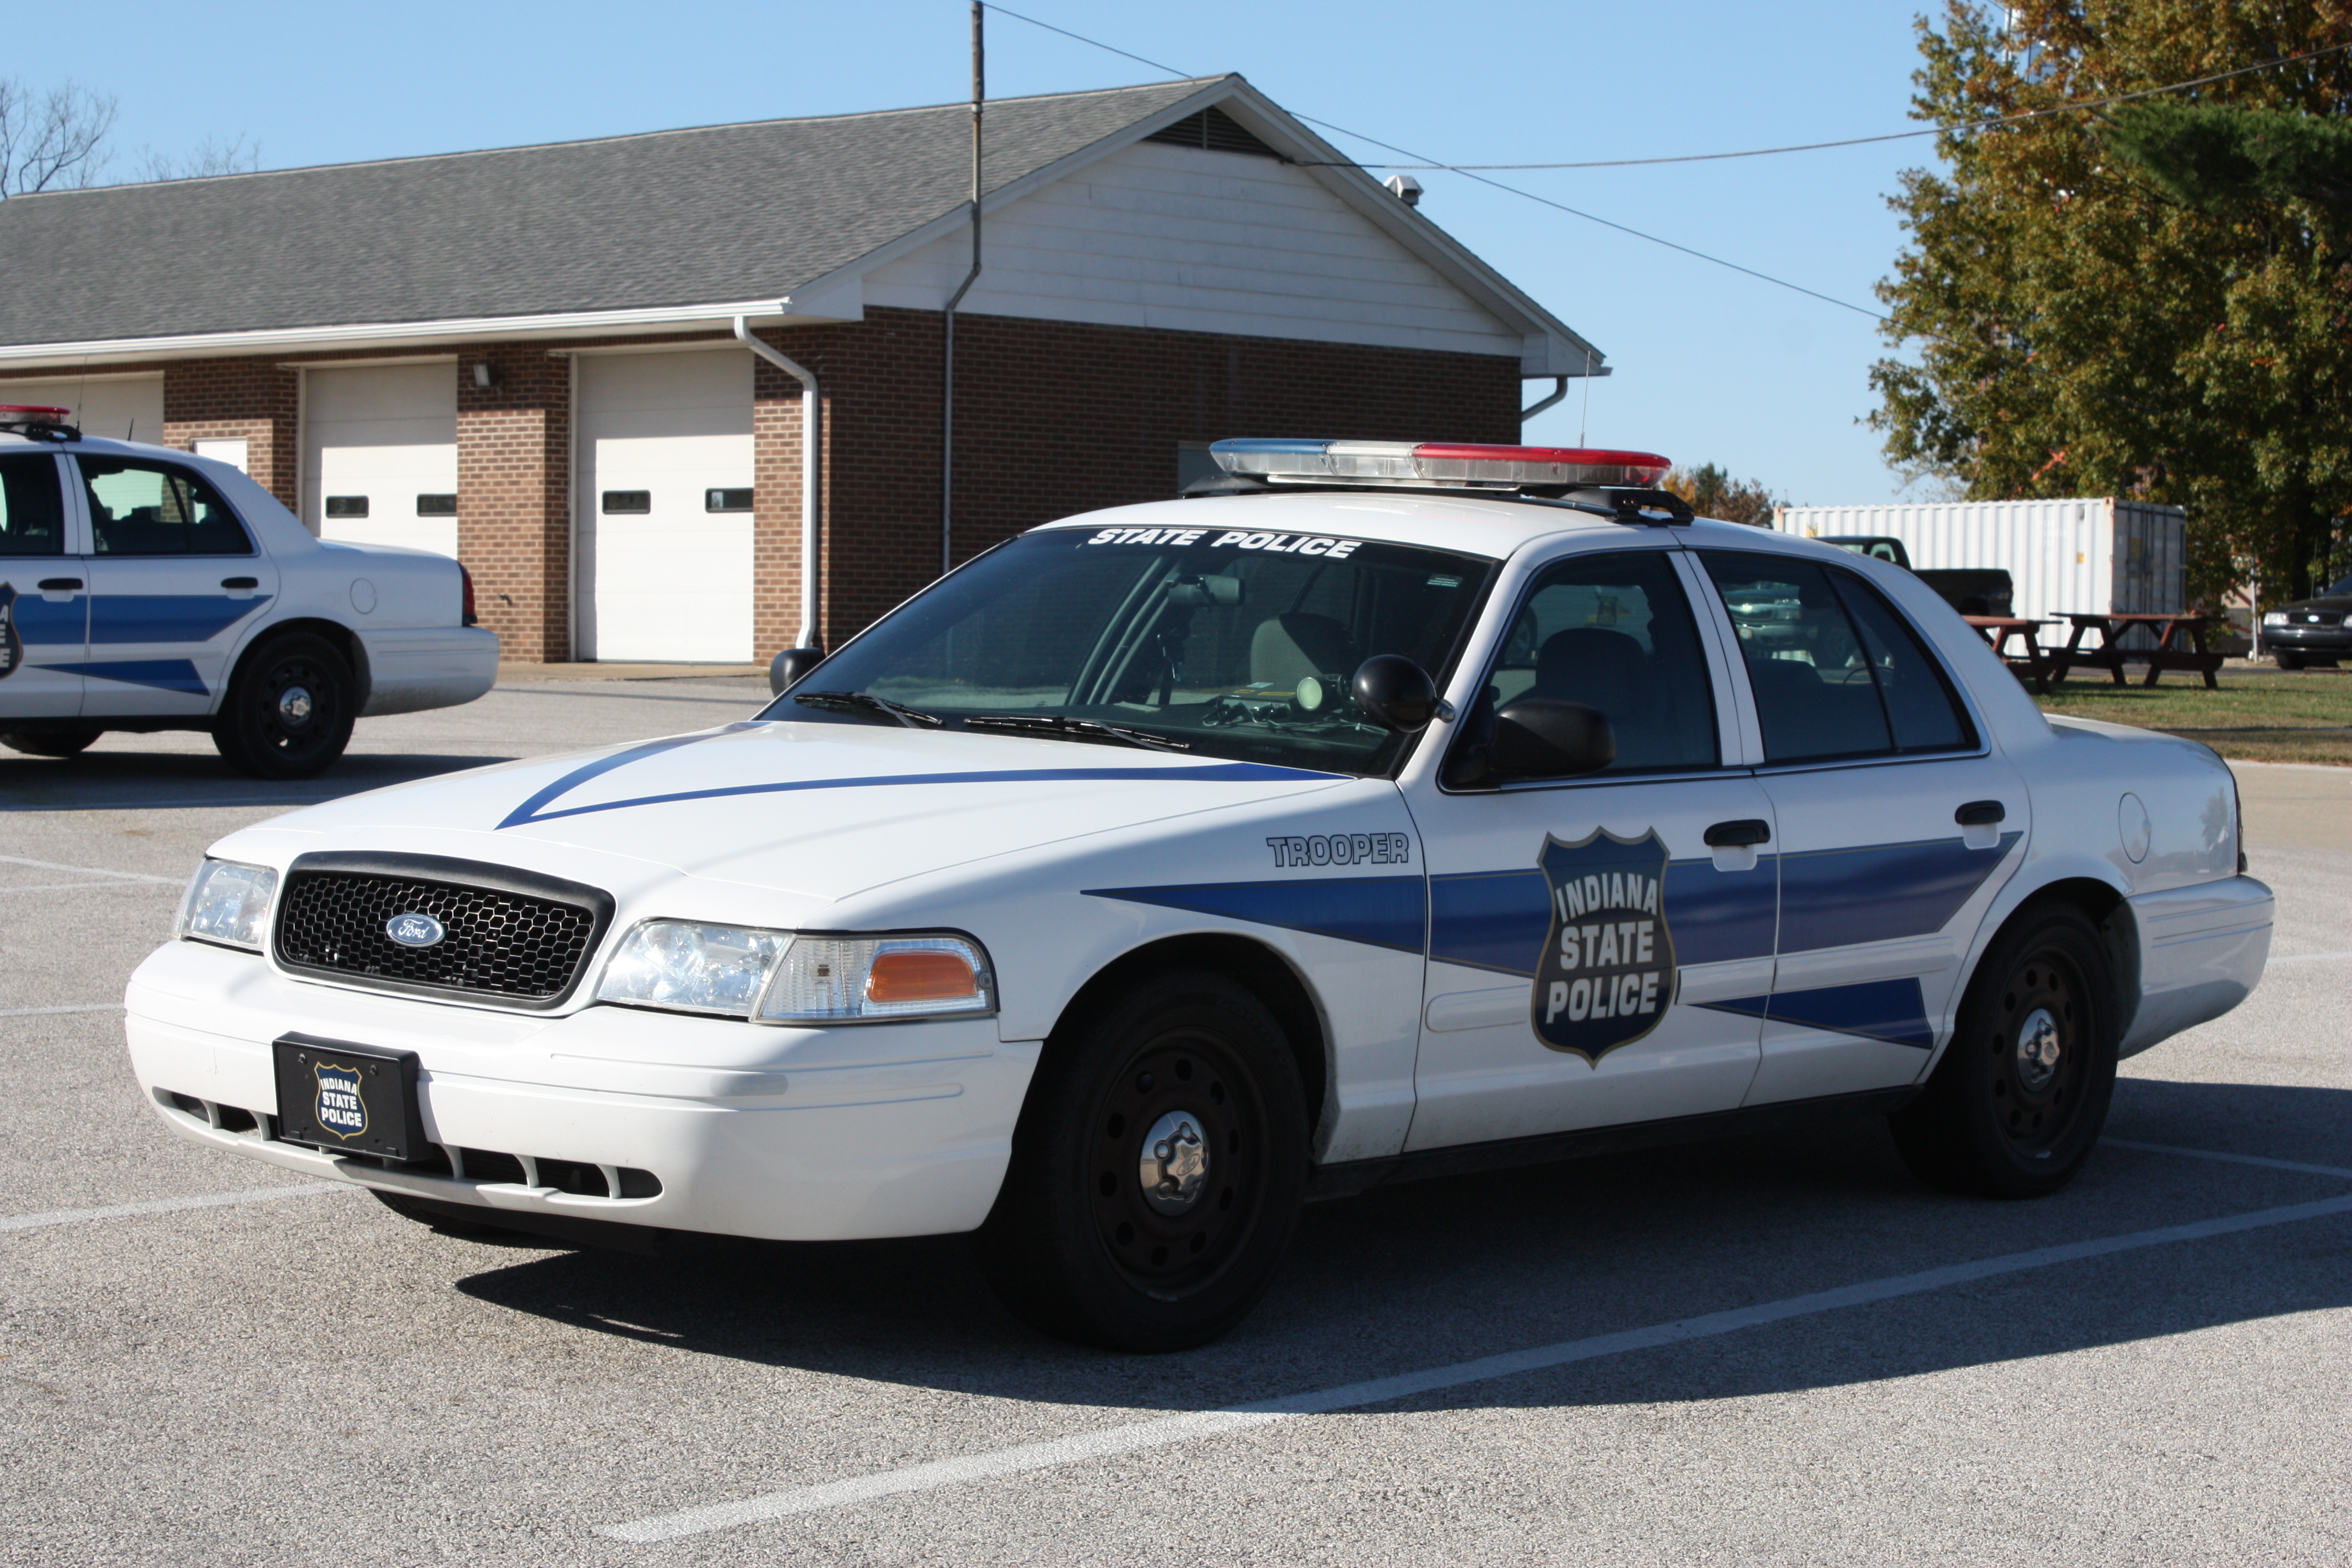 Police Cars for Sale Near Me Elegant Retired Police Cars for Sale